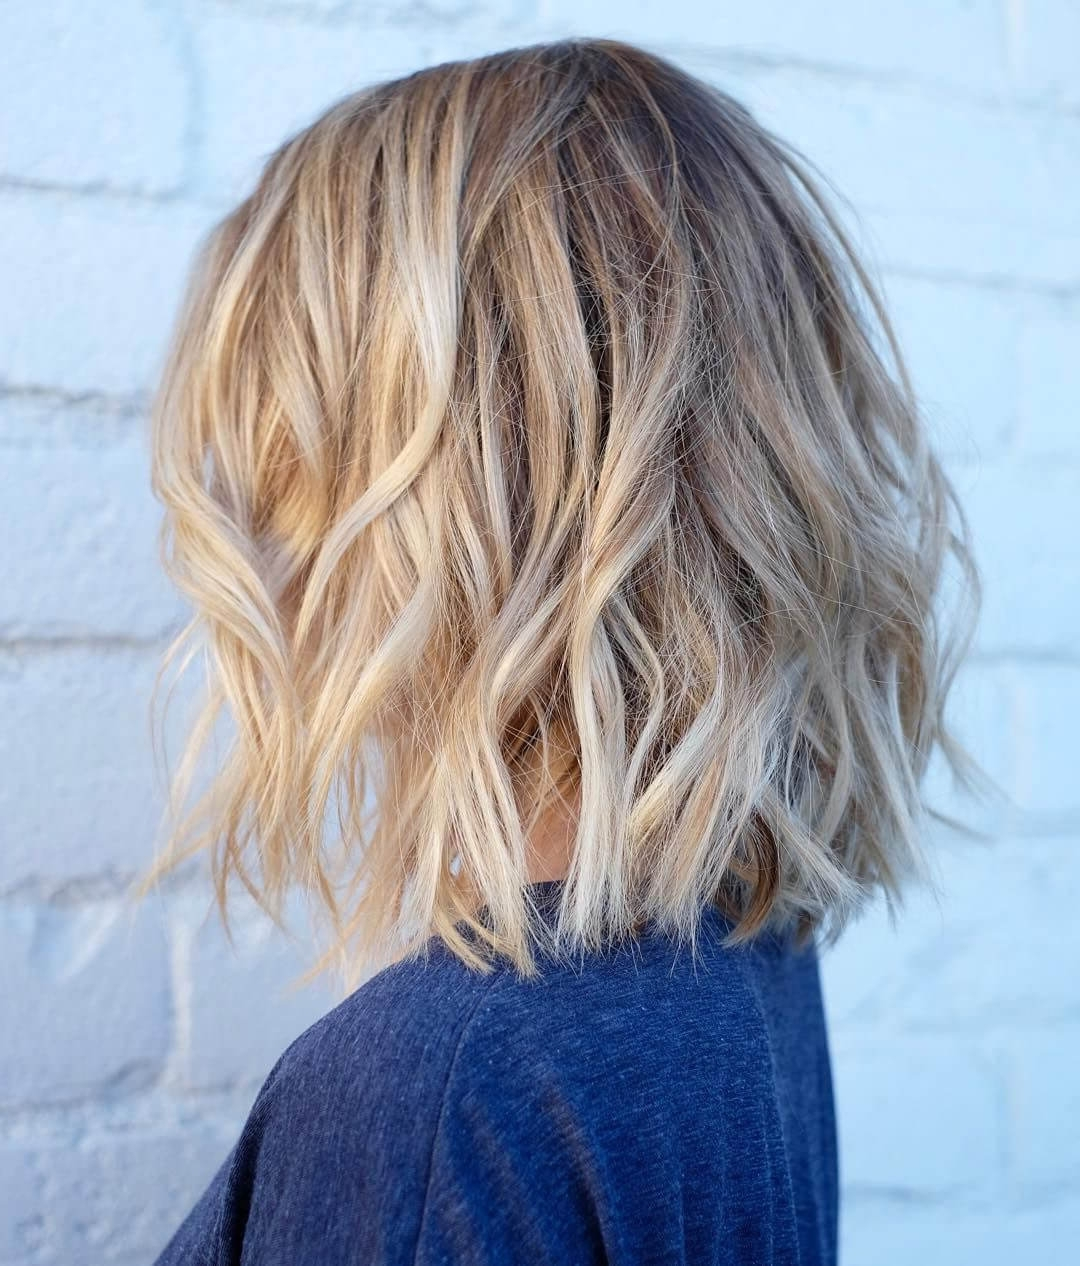 Best And Newest Ashy Blonde Pixie Hairstyles With A Messy Touch Inside 50 Fresh Short Blonde Hair Ideas To Update Your Style In (View 10 of 20)